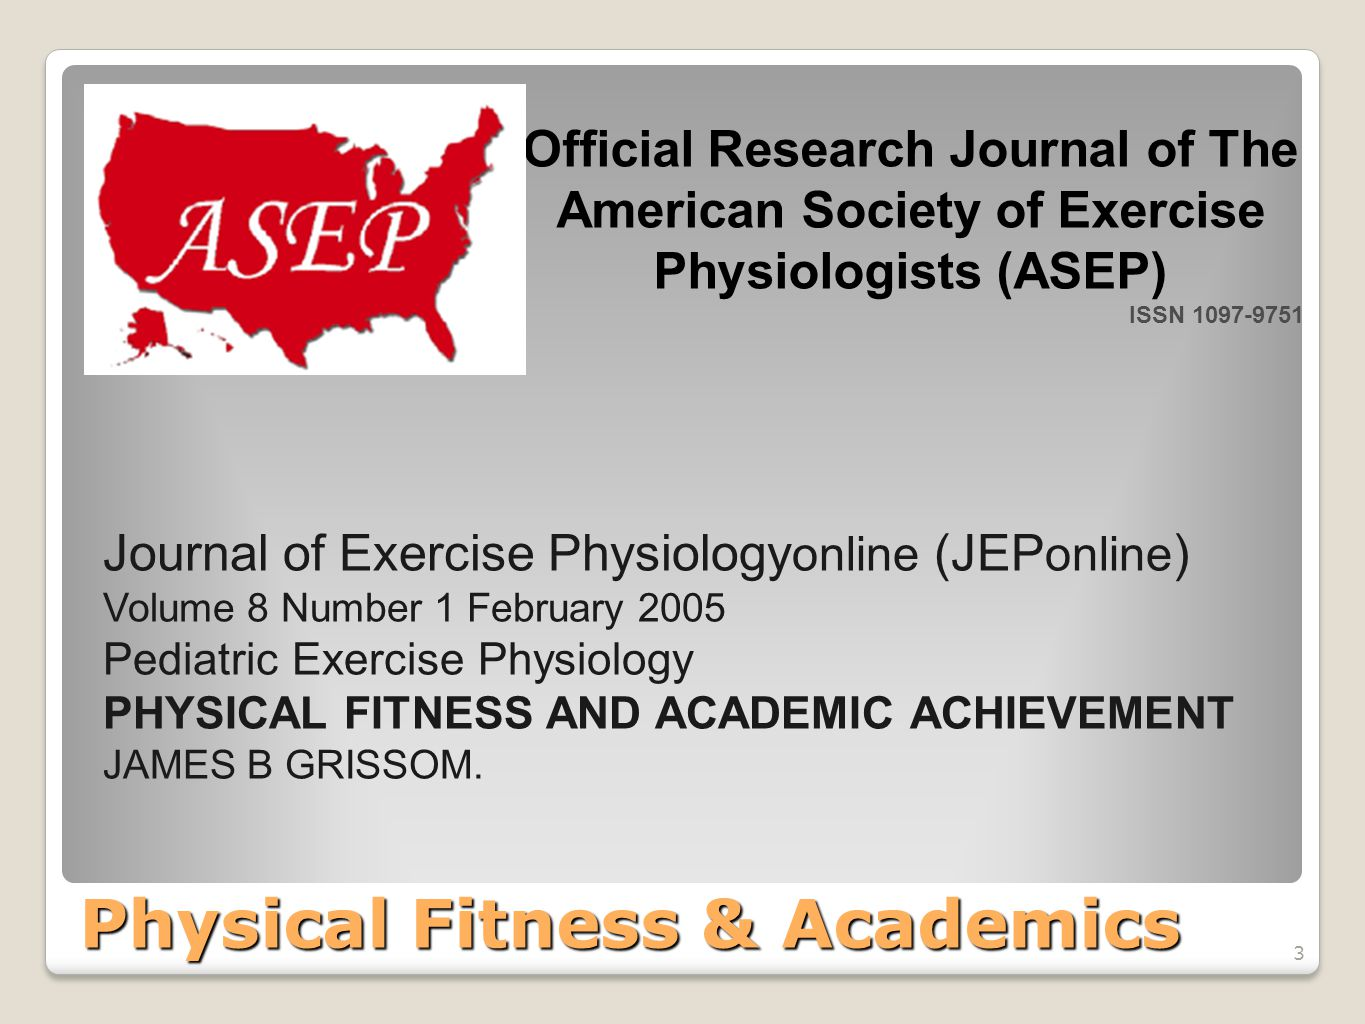 Physical Fitness & Academics